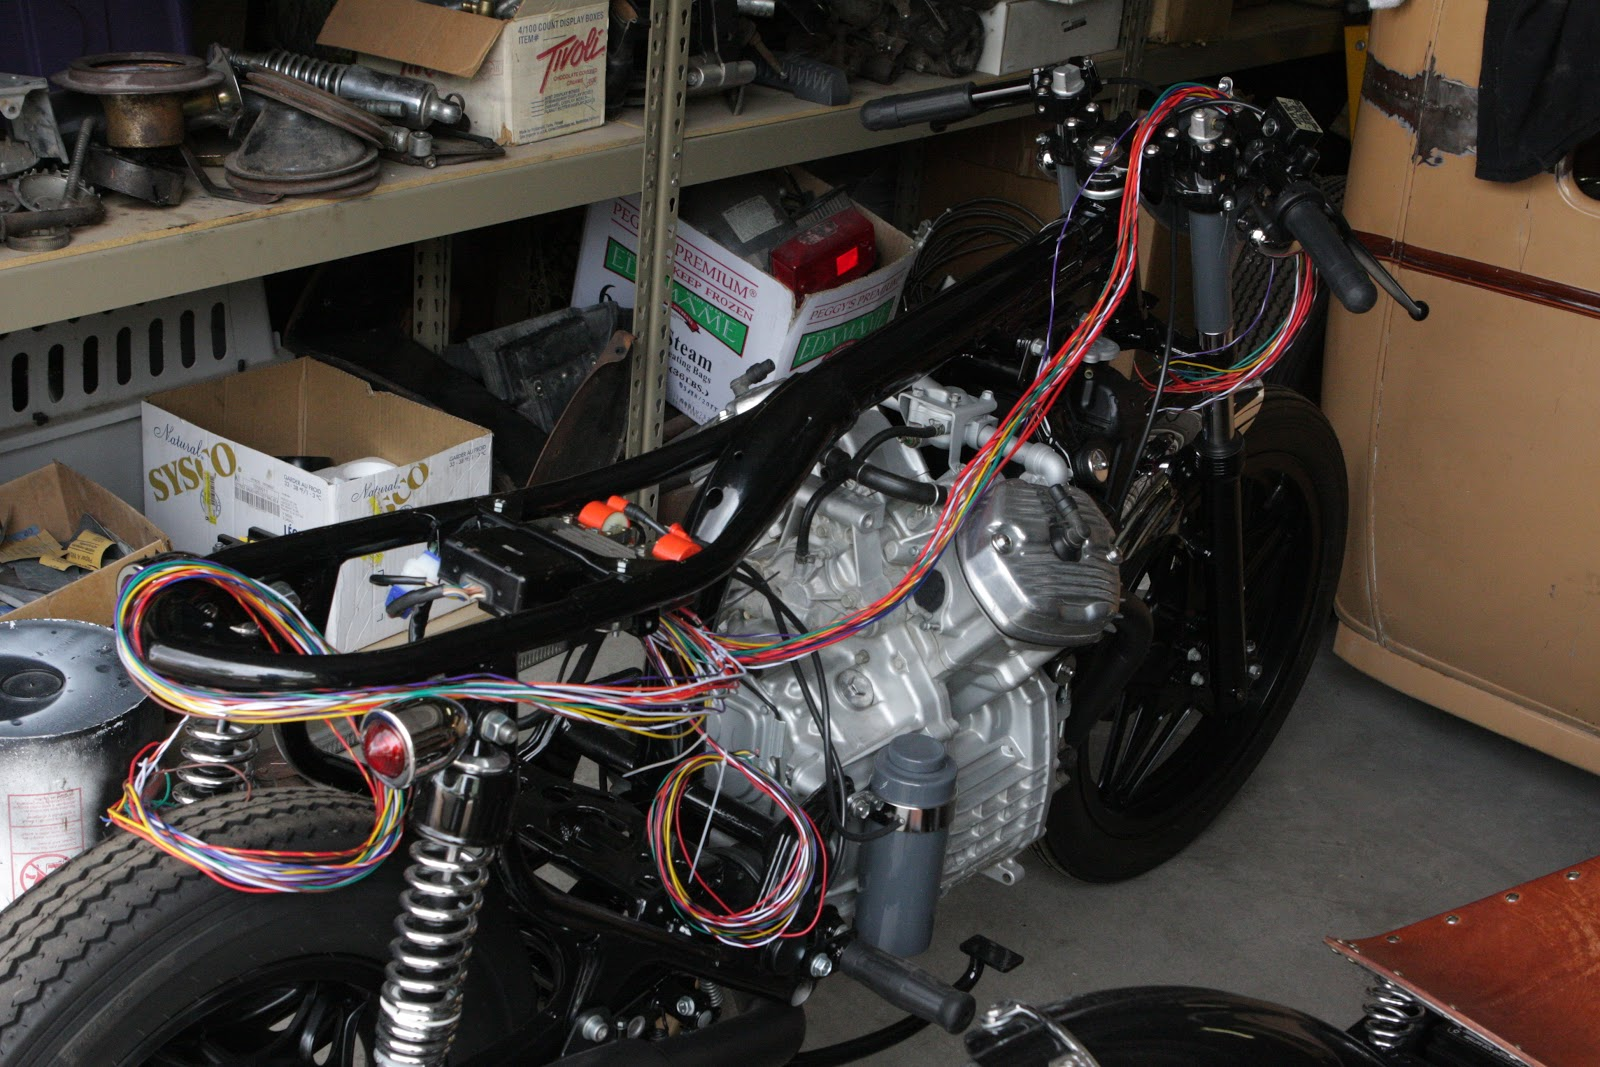 IMG_0911 Ultima Wiring Harness Compact on ultima motor wiring diagram, ultima harness 18 530, ultima electronic wiring system,